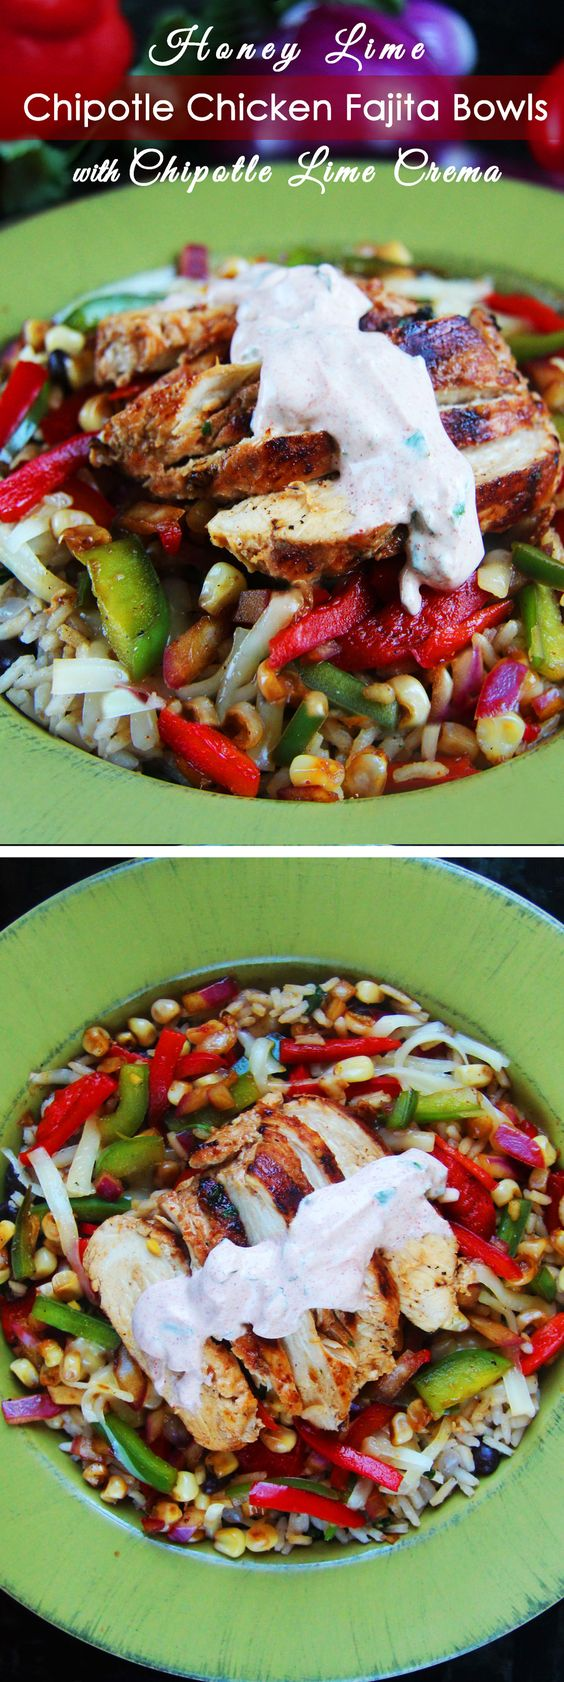 Honey Lime Chipotle Chicken Fajita Bowls with Chipotle Lime Crema ...